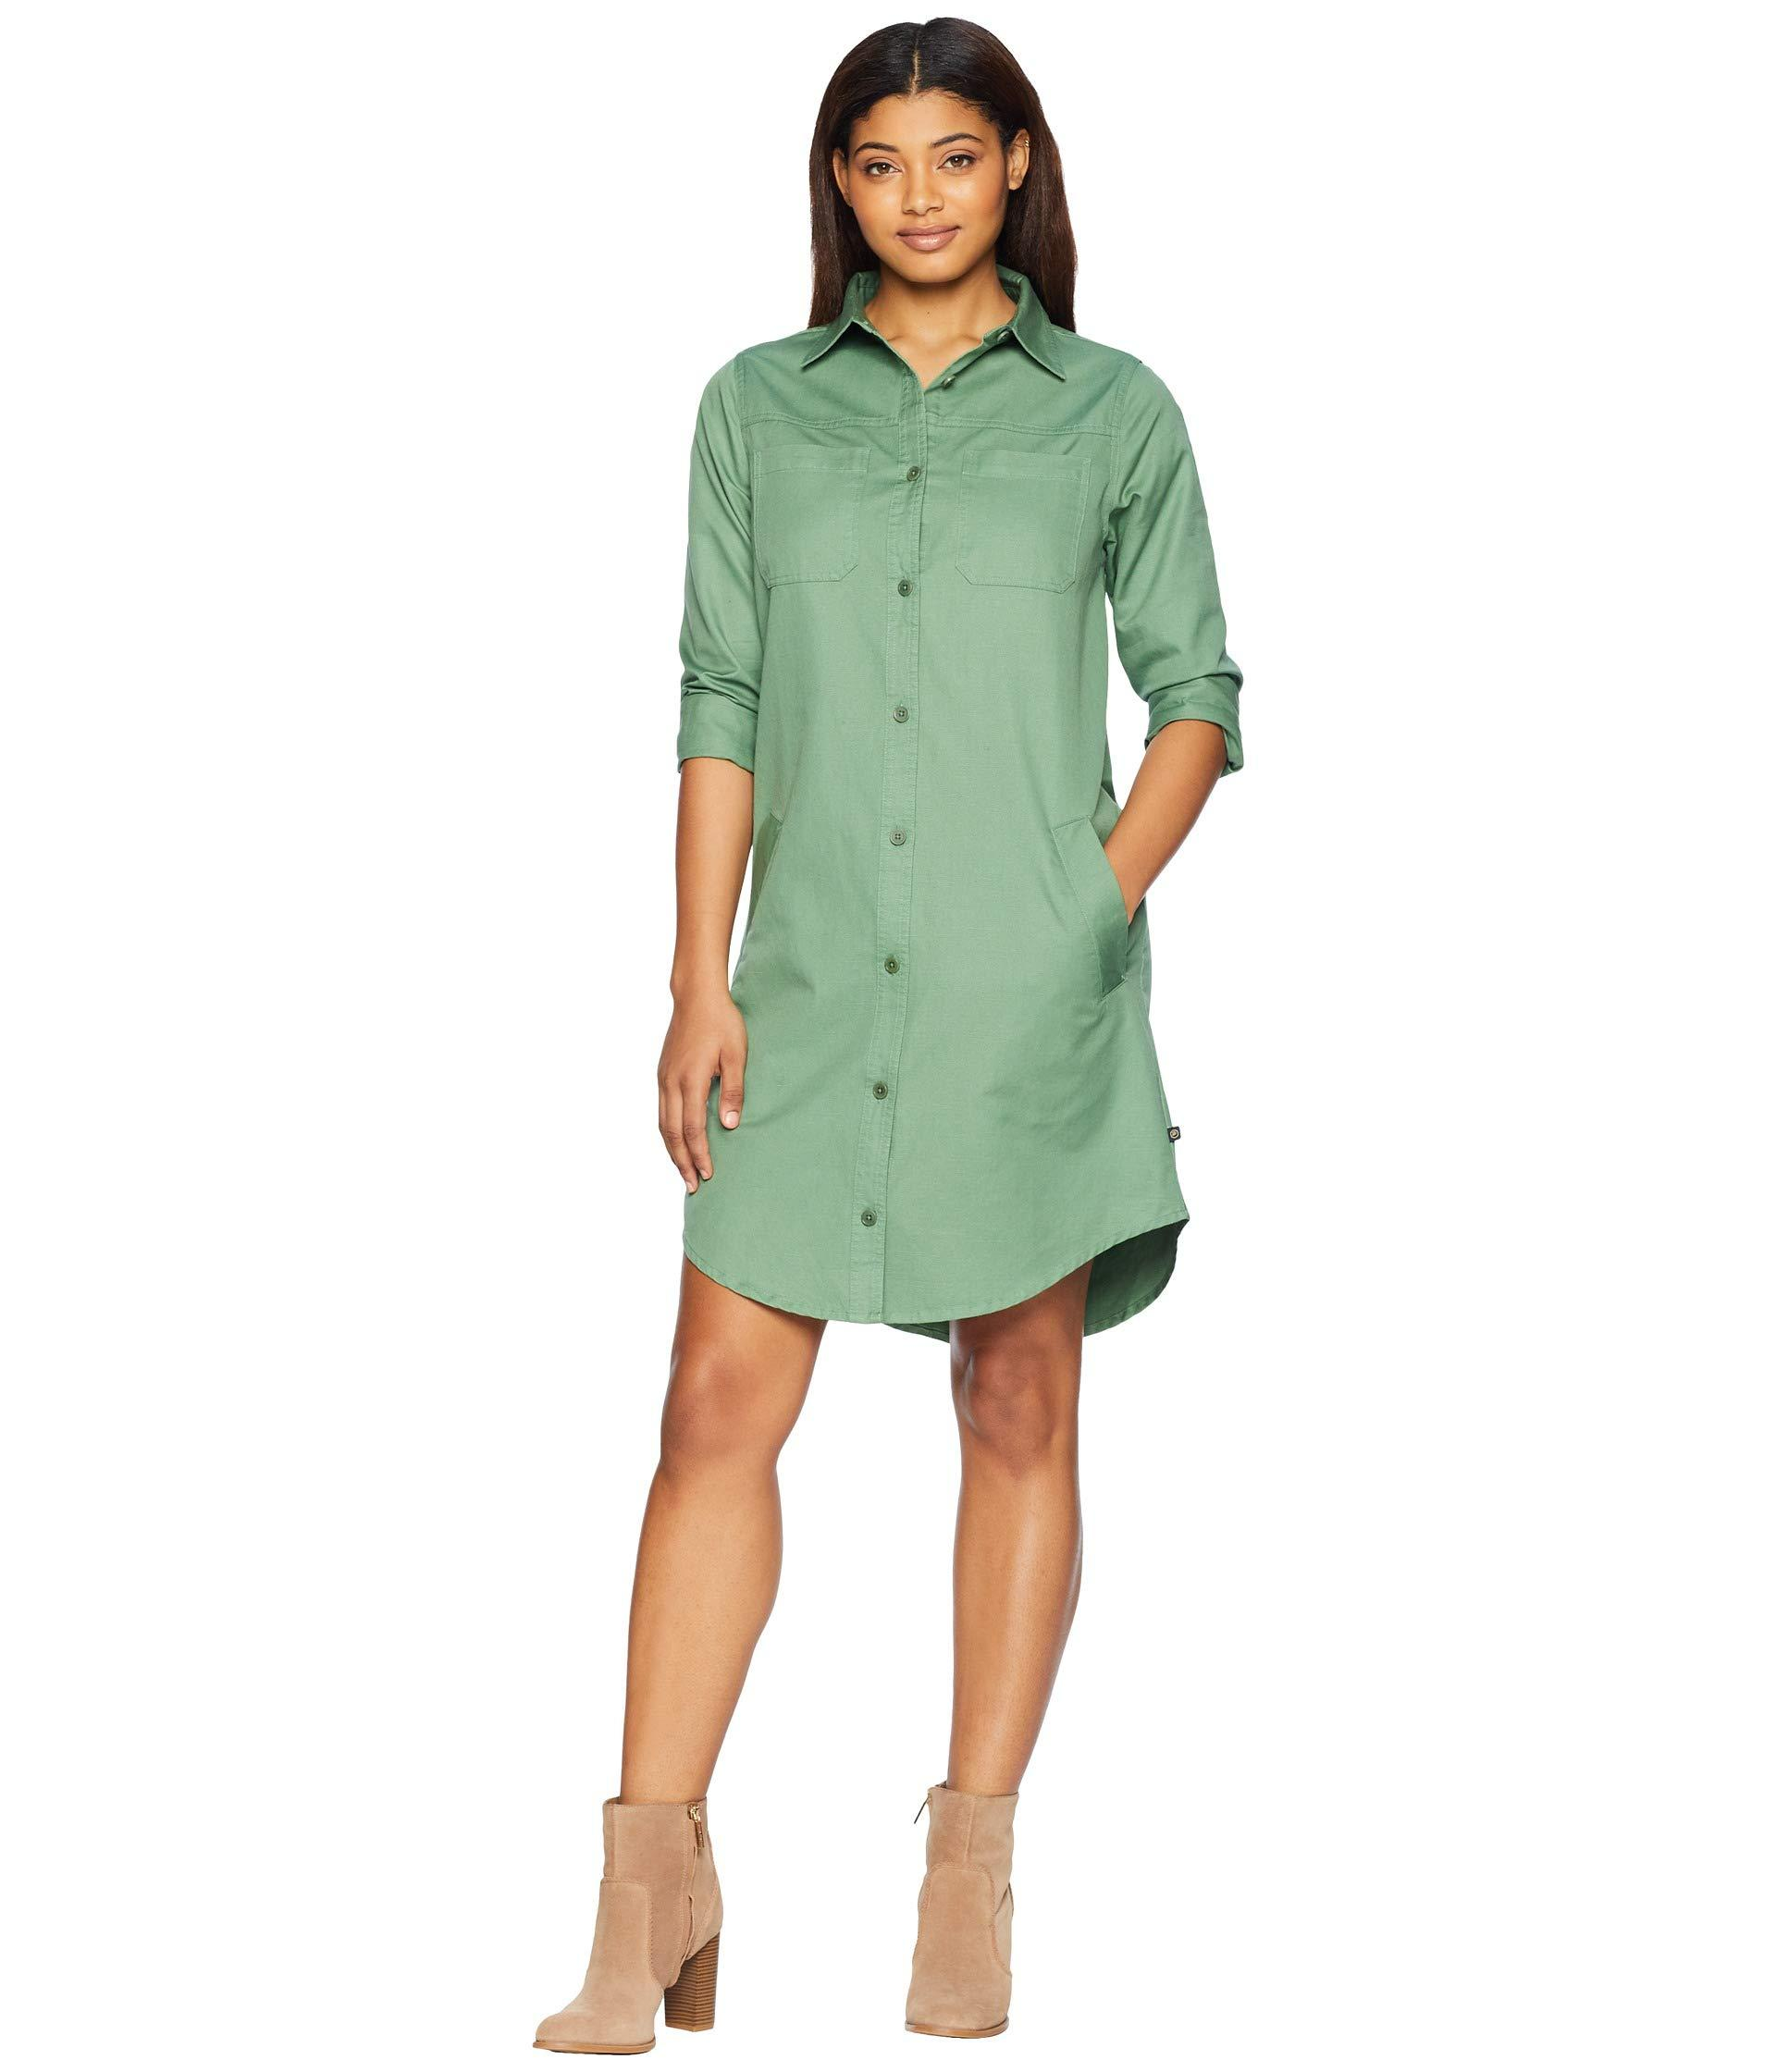 4a02497798 Lyst - United By Blue Leighlake Dress in Green - Save 18%